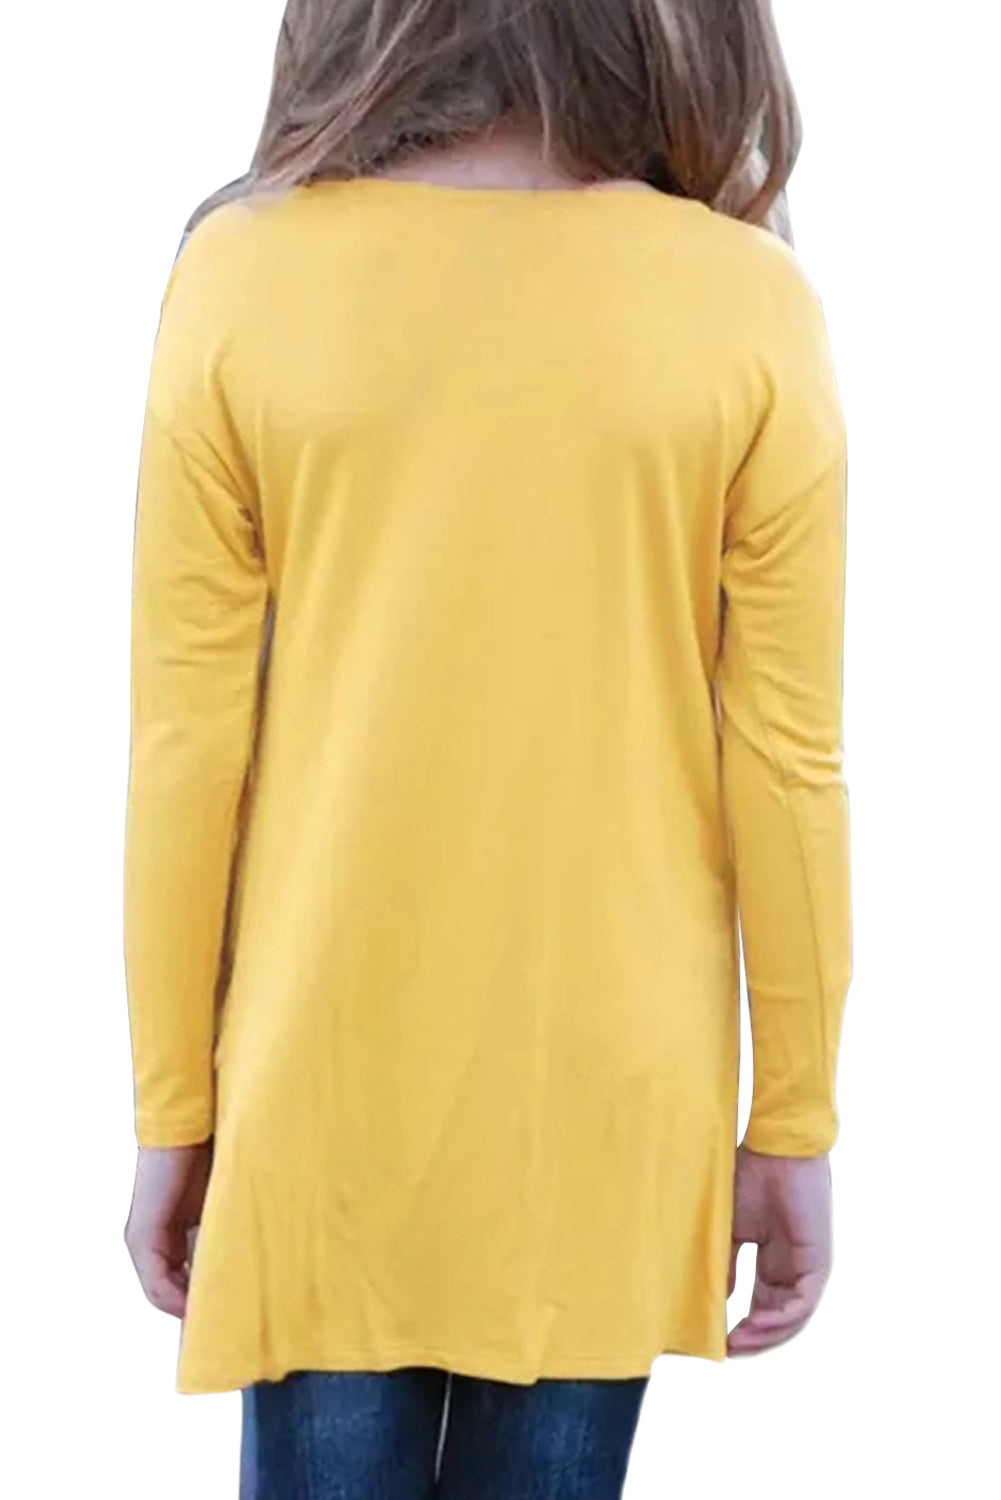 Mustard Twist Knot Detail Long Sleeve Girl's Top